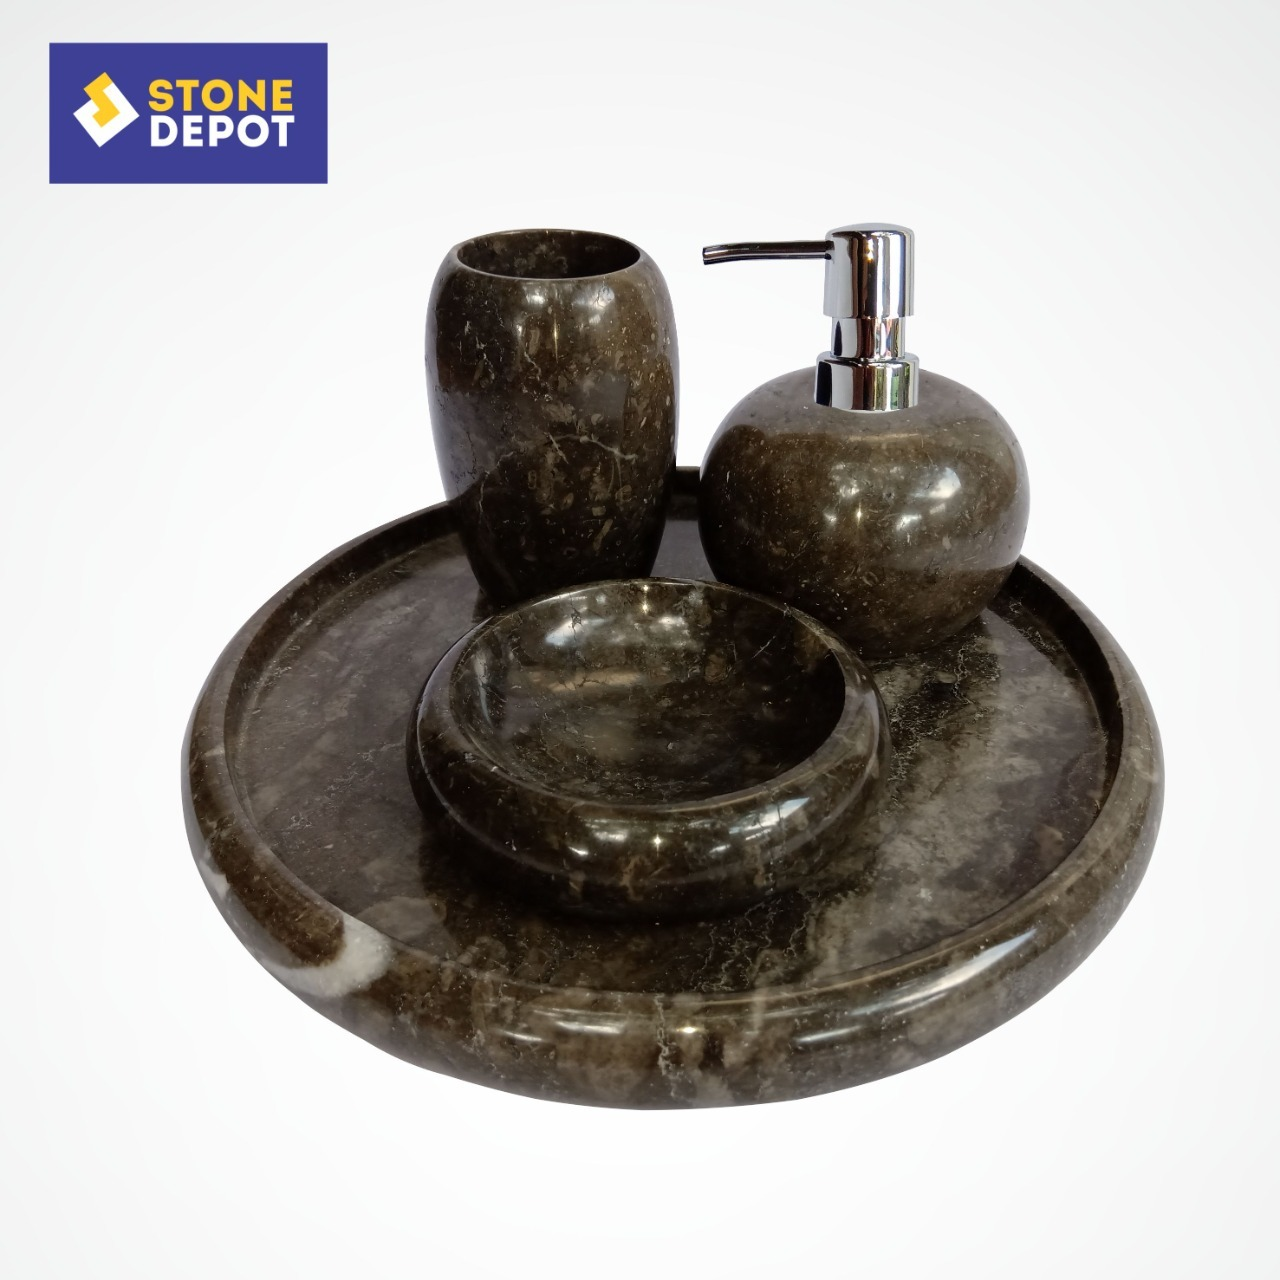 Bali Black Marble Bathroom Set Stone Soap Dish